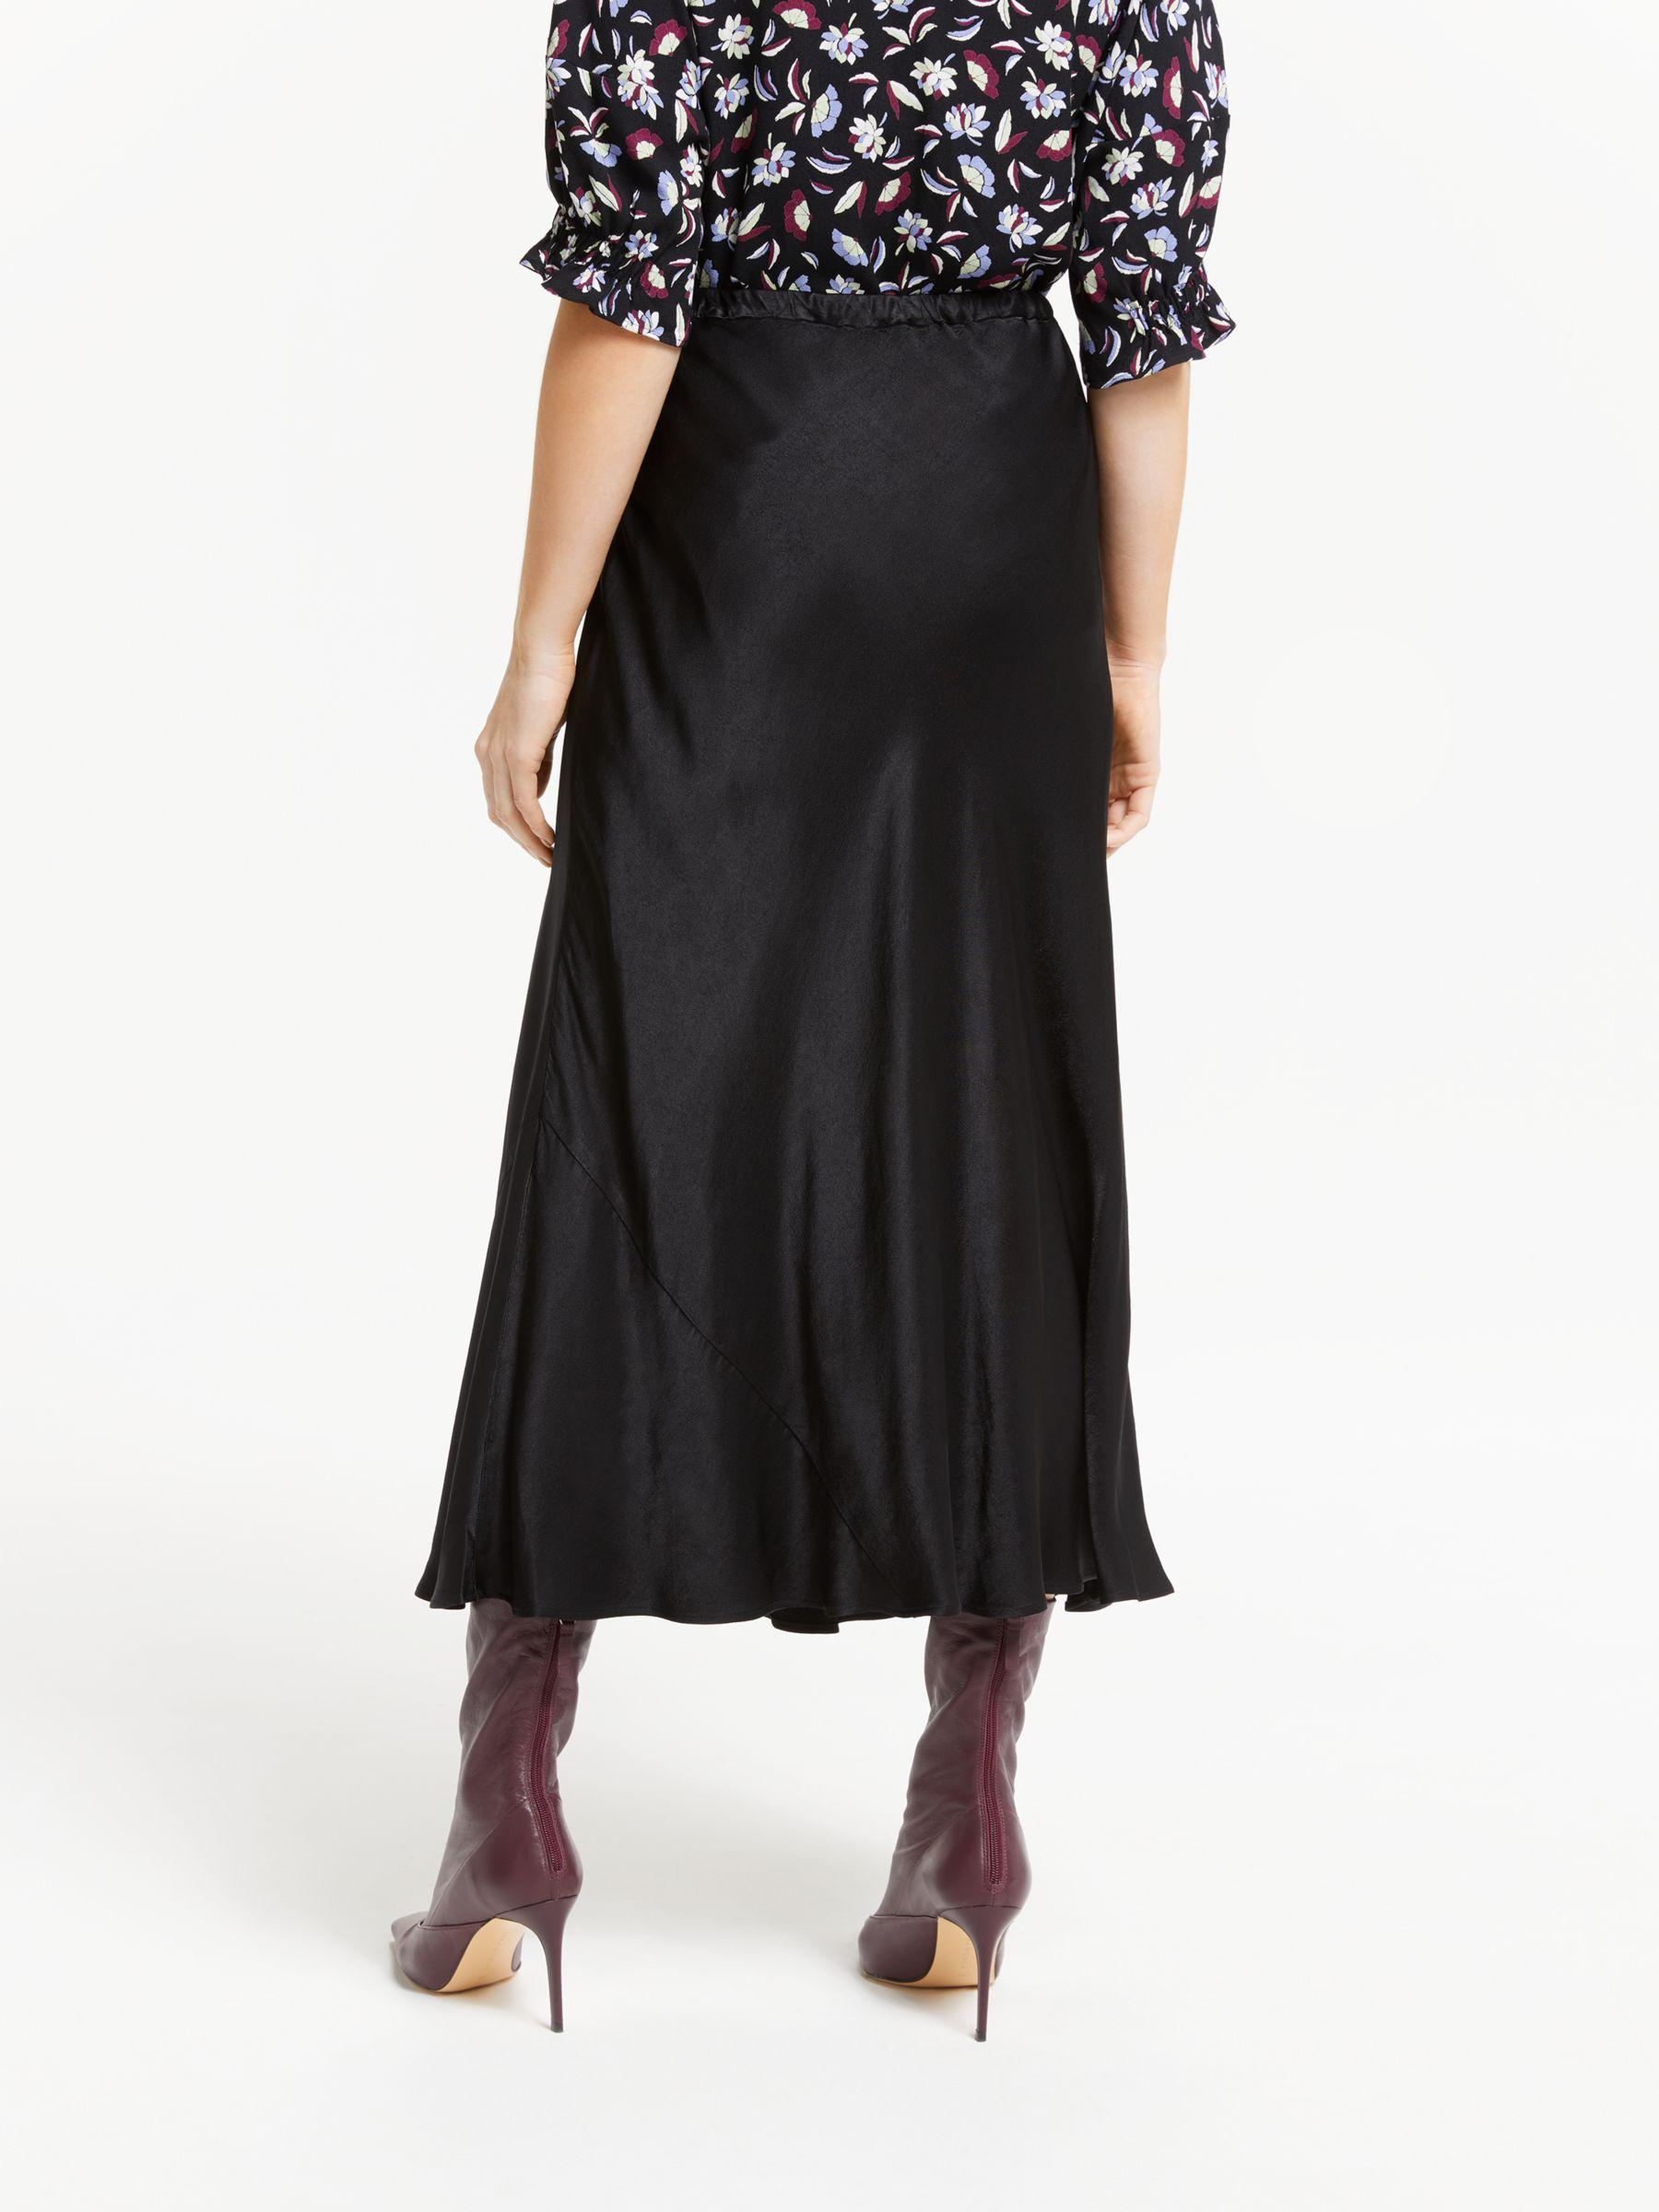 aa80df97f Finery London Alberte Satin Skirt in Black - Lyst